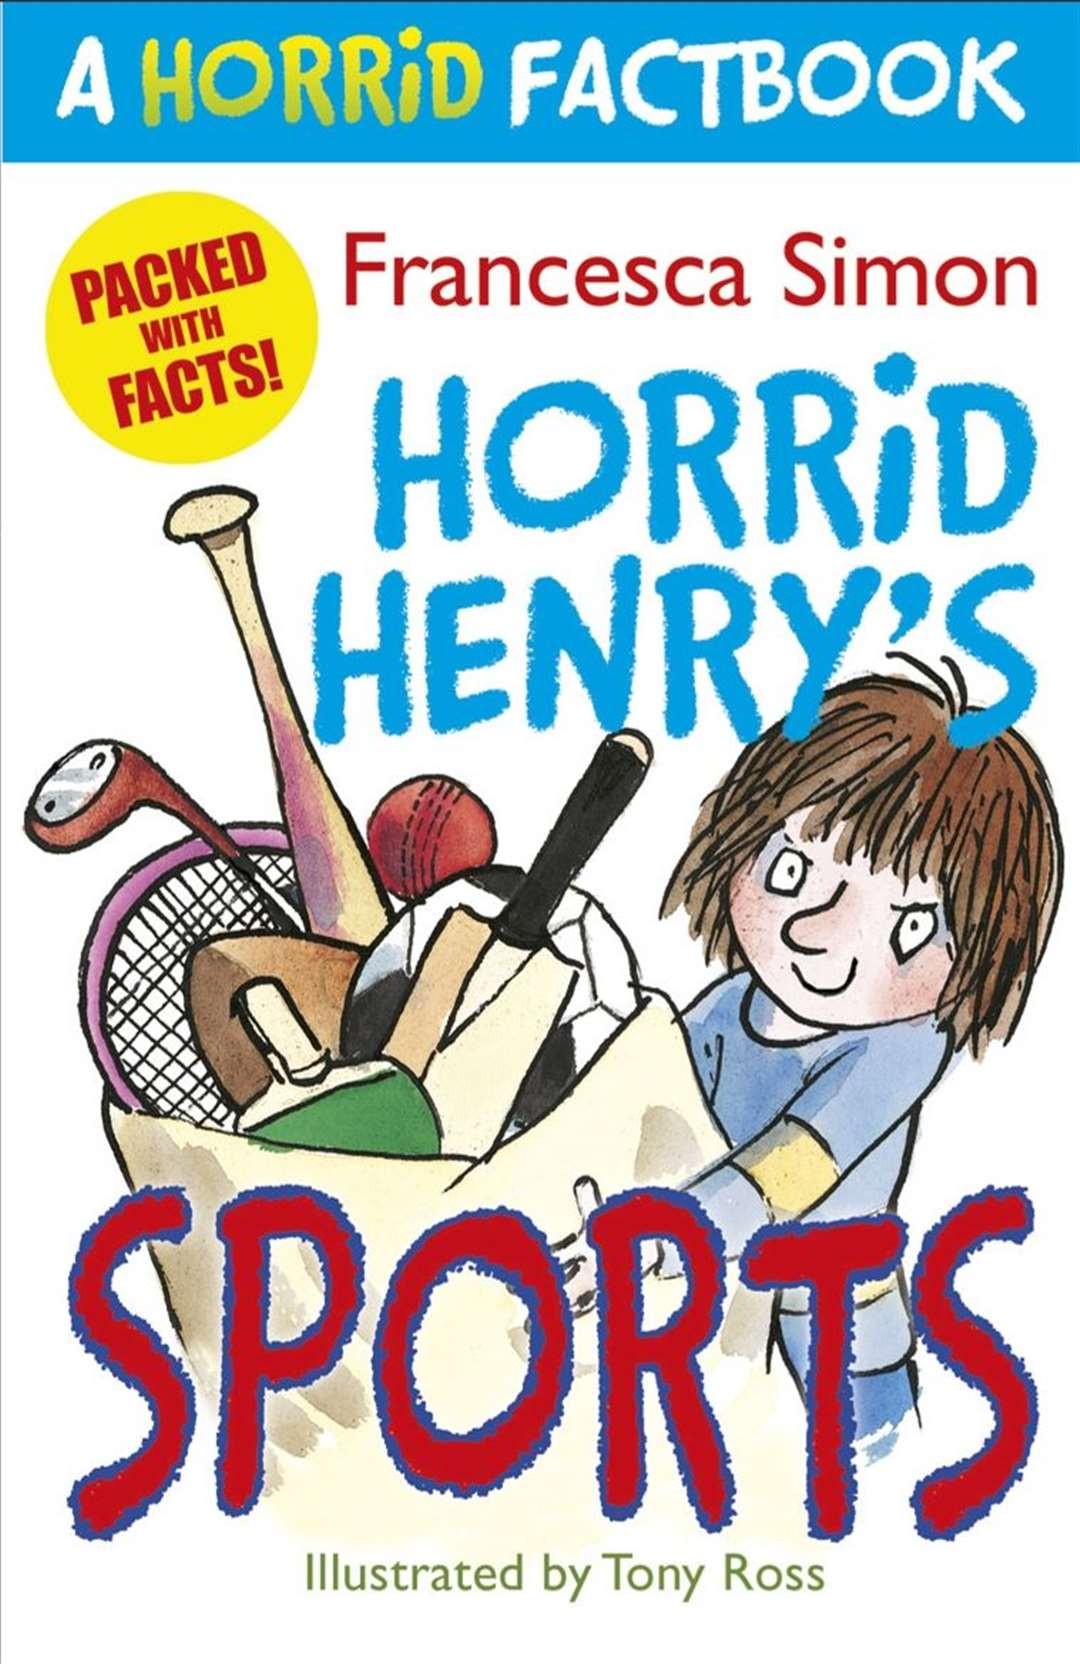 Horrid Henry's Sports: A Horrid Factbook by Francesca Simon and Tony Ross (43189865)